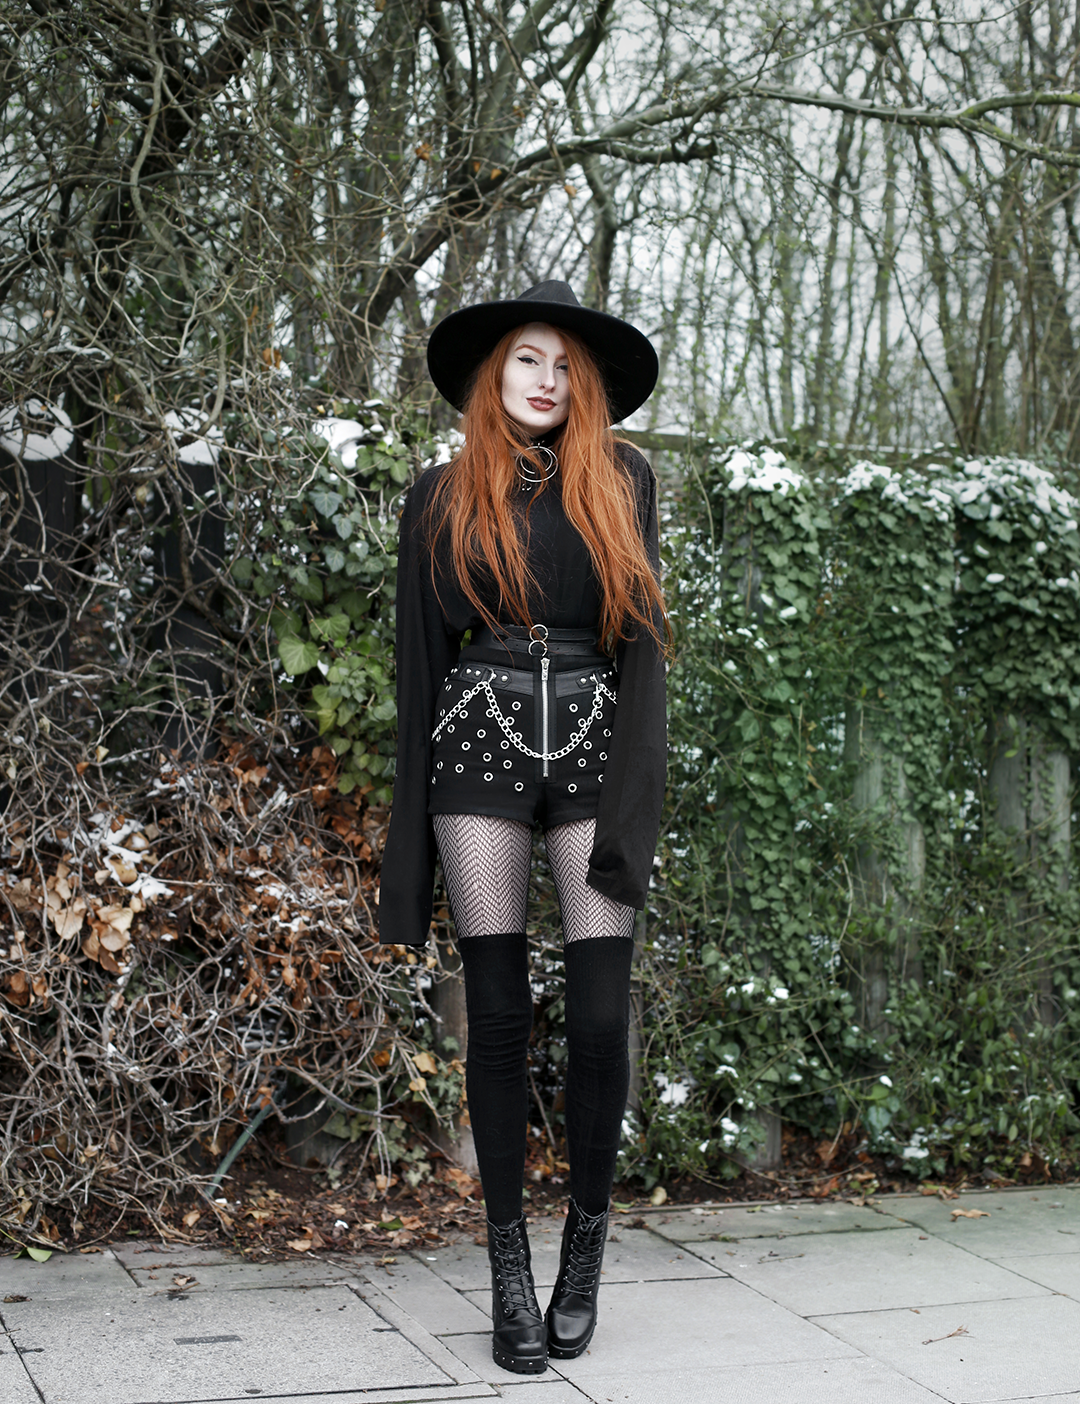 Olivia Emily styles up statement studded shorts for colder temperatures with cosy overknee socks and an oversized top